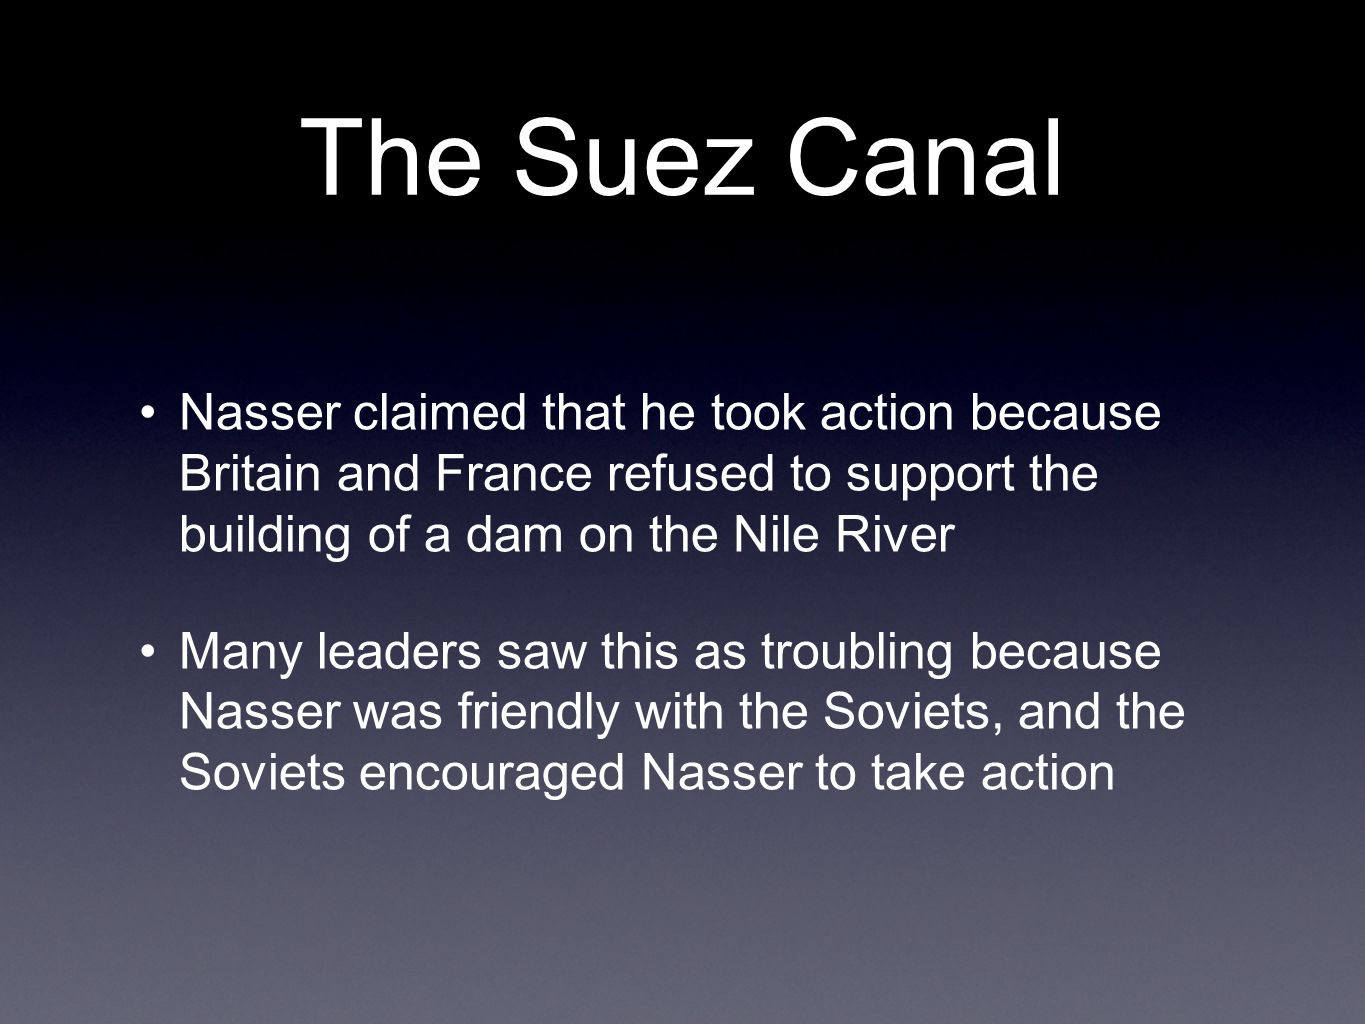 The Suez Canal Nasser claimed that he took action because Britain and France refused to support the building of a dam on the Nile River Many leaders saw this as troubling because Nasser was friendly with the Soviets, and the Soviets encouraged Nasser to take action